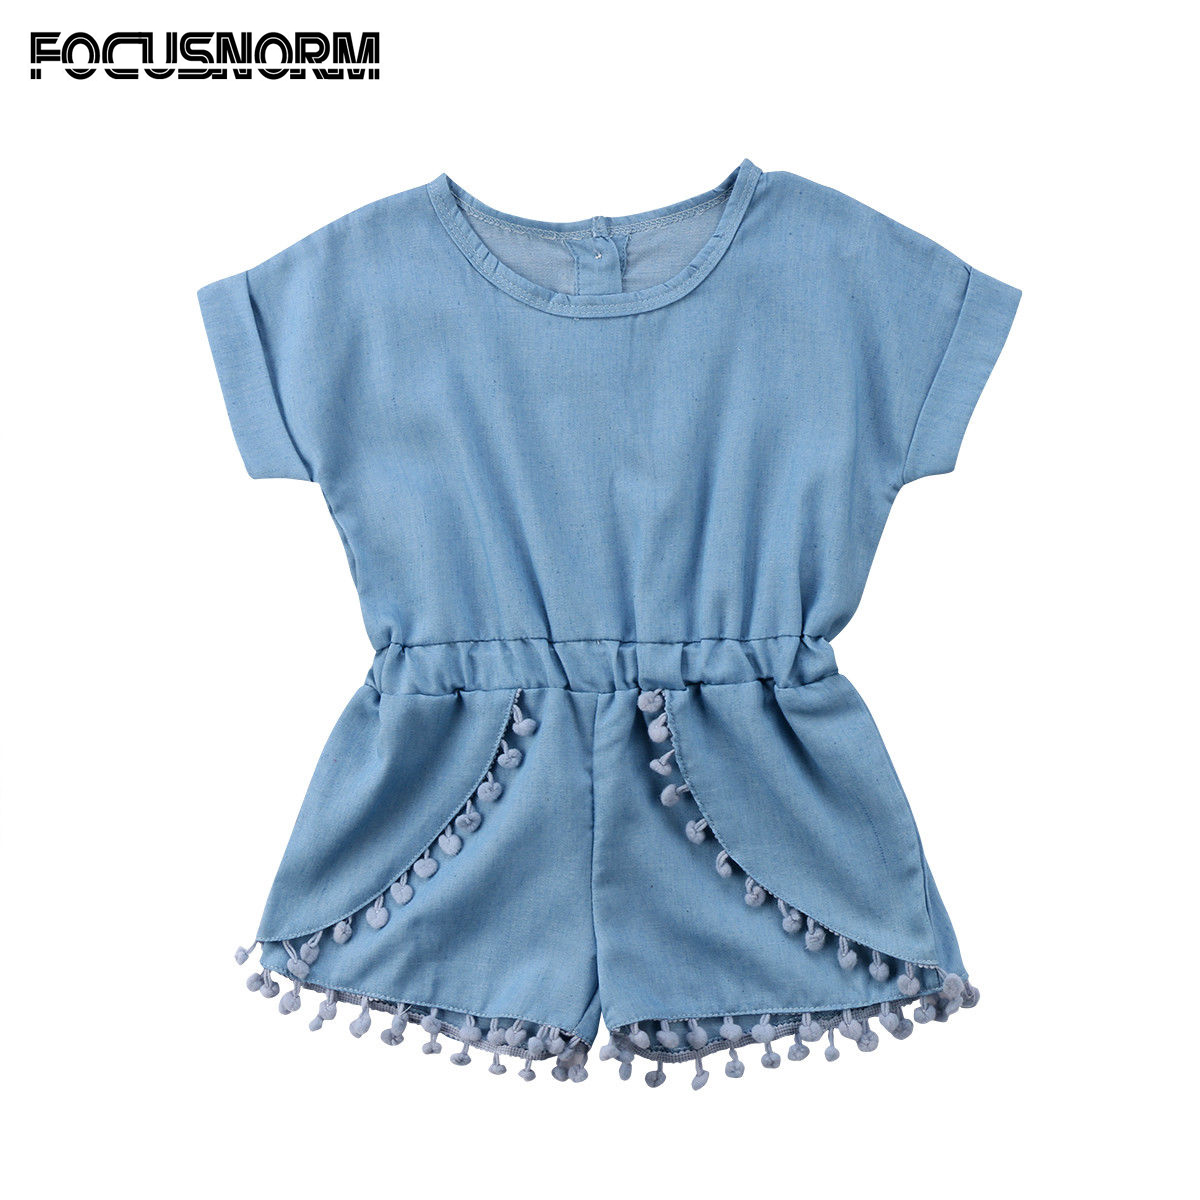 Cute Toddler Baby Girls Denim Tassel Short Sleeves Romper One Piece Jumpsuit Playsuit Cotton Clothes puseky 2017 infant romper baby boys girls jumpsuit newborn bebe clothing hooded toddler baby clothes cute panda romper costumes